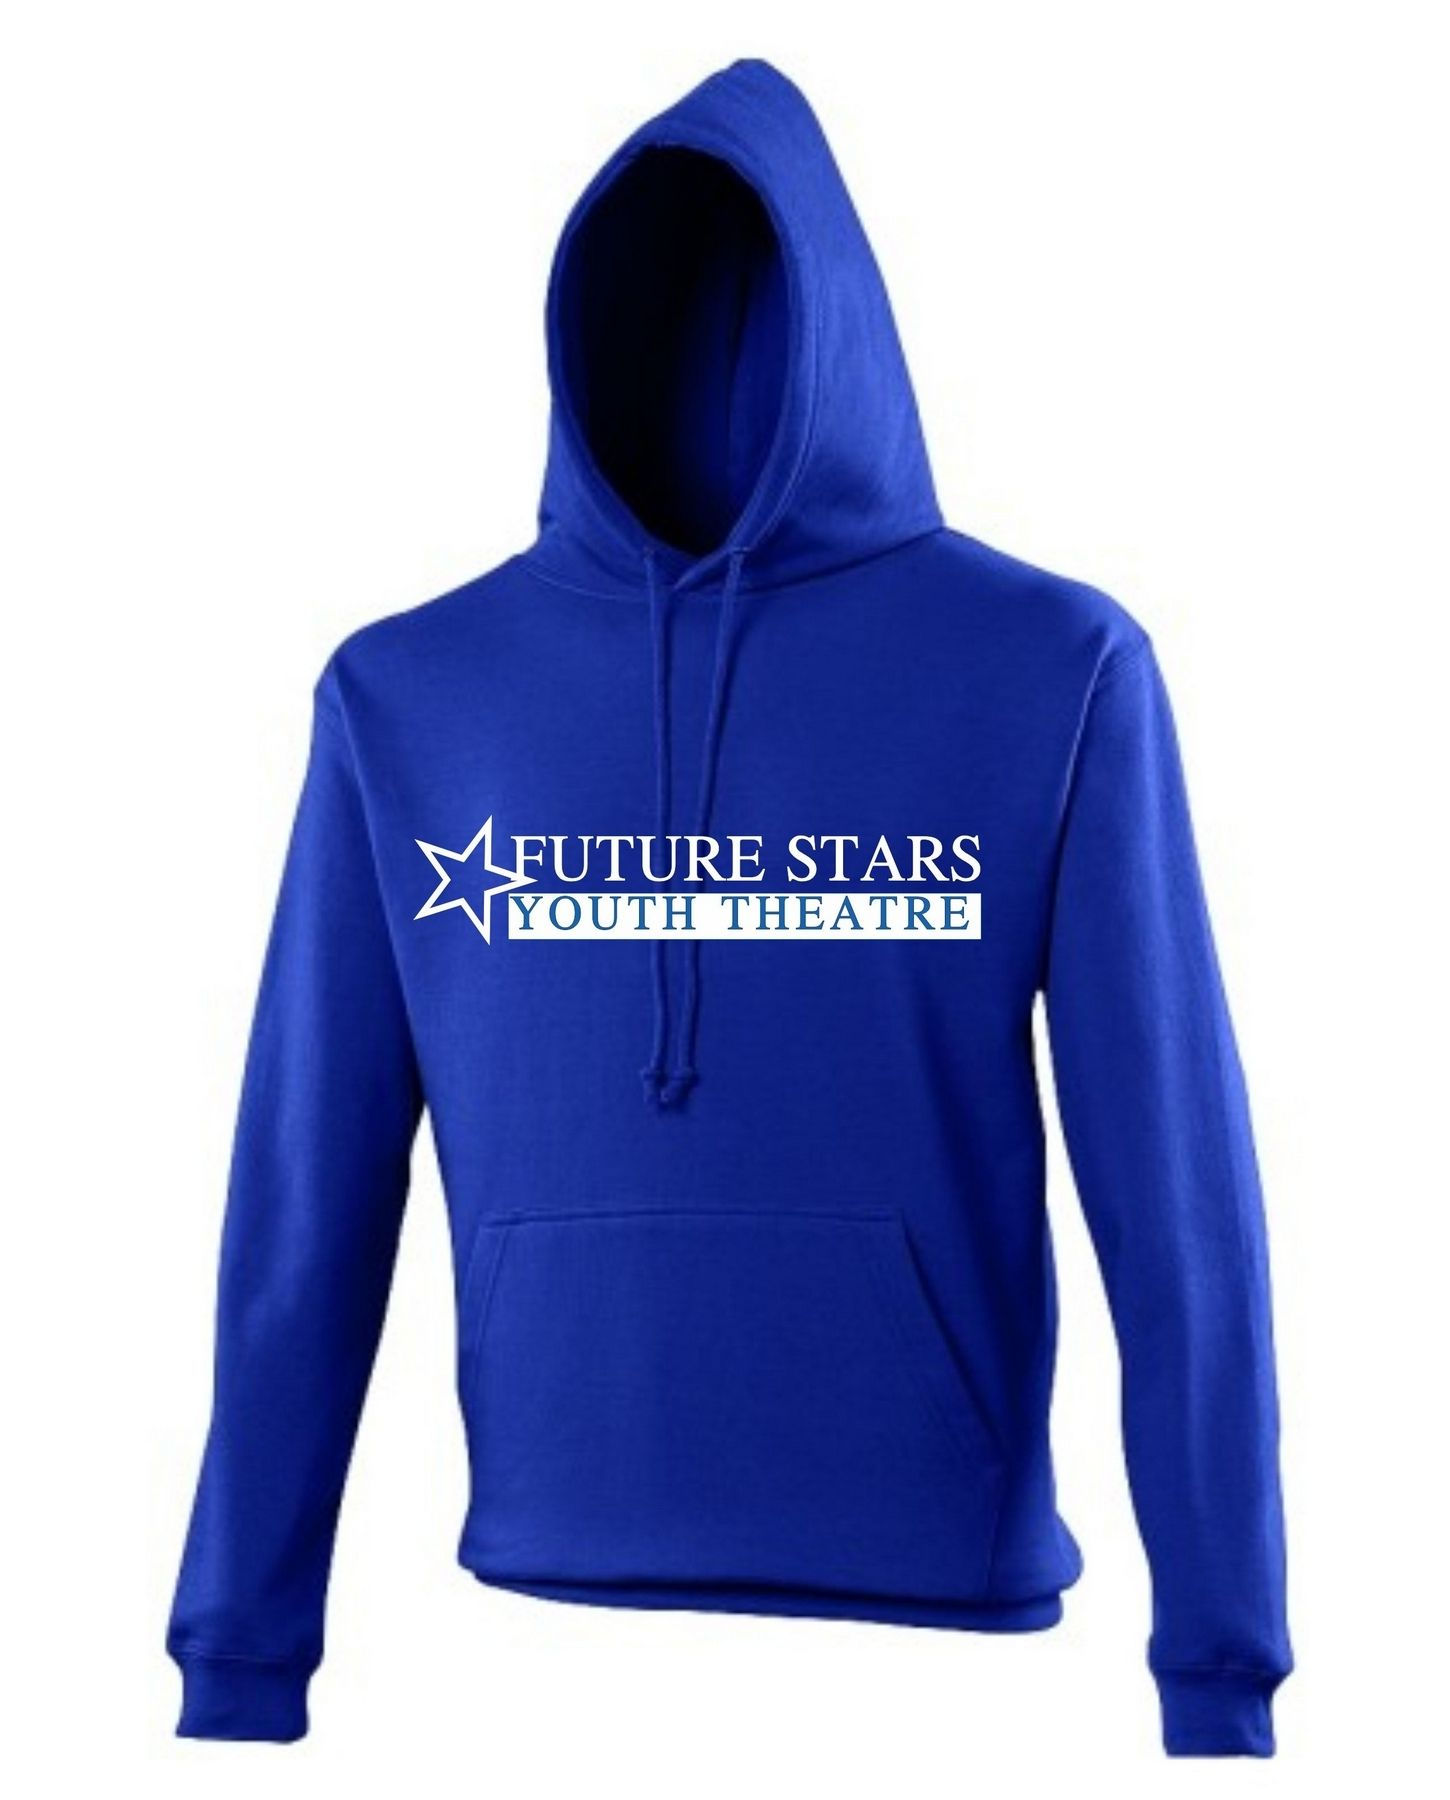 Future Stars Youth Theatre – Adults Hoodie